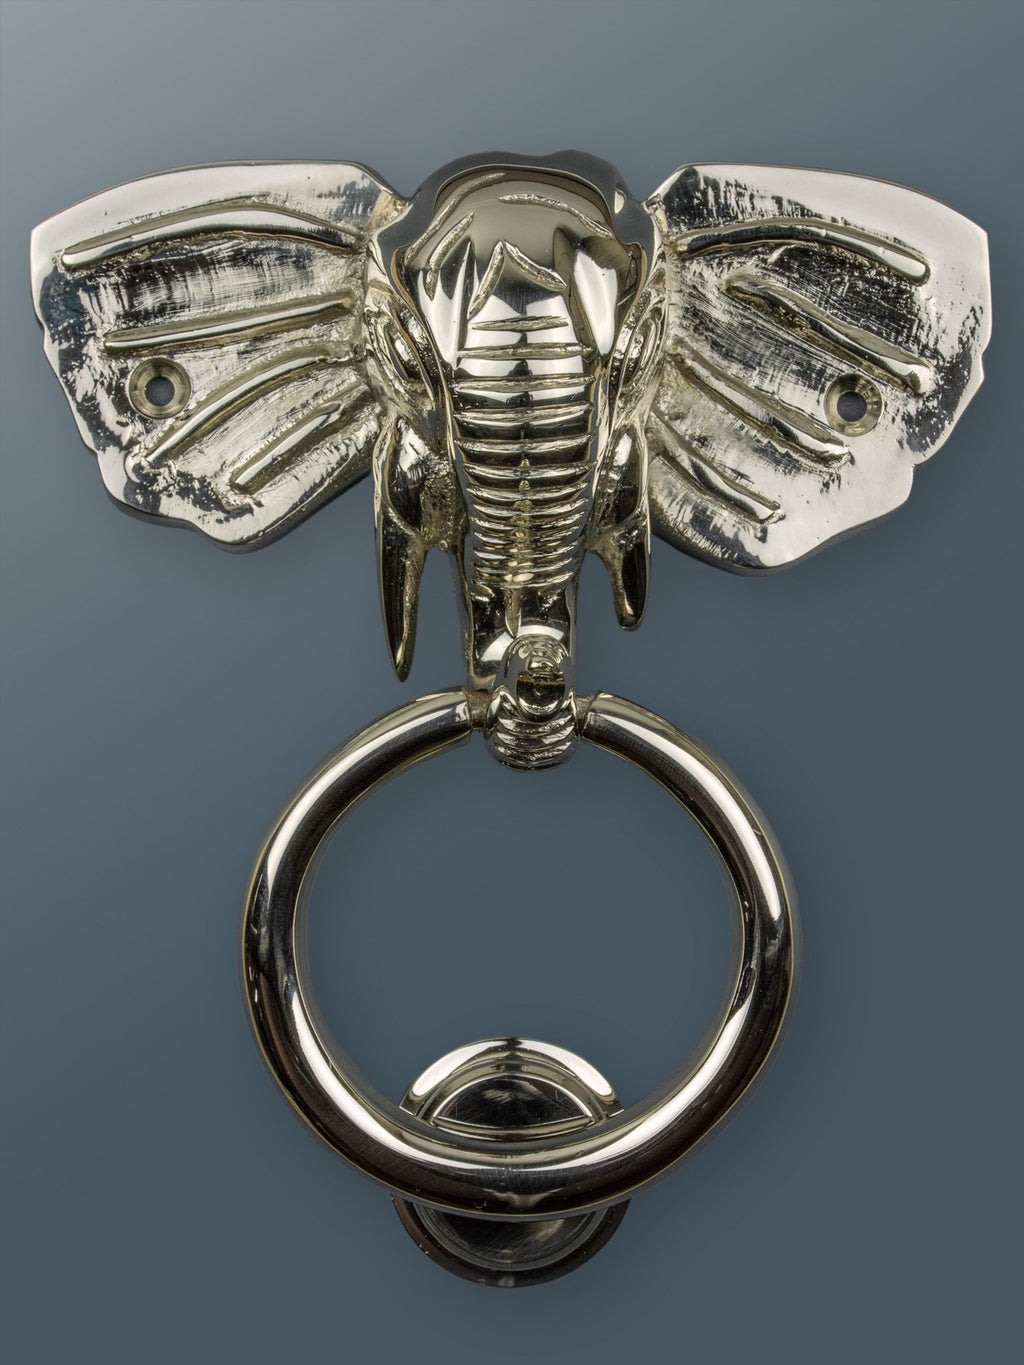 Elephant Door Knocker Ring-Nickel/Chrome Finish